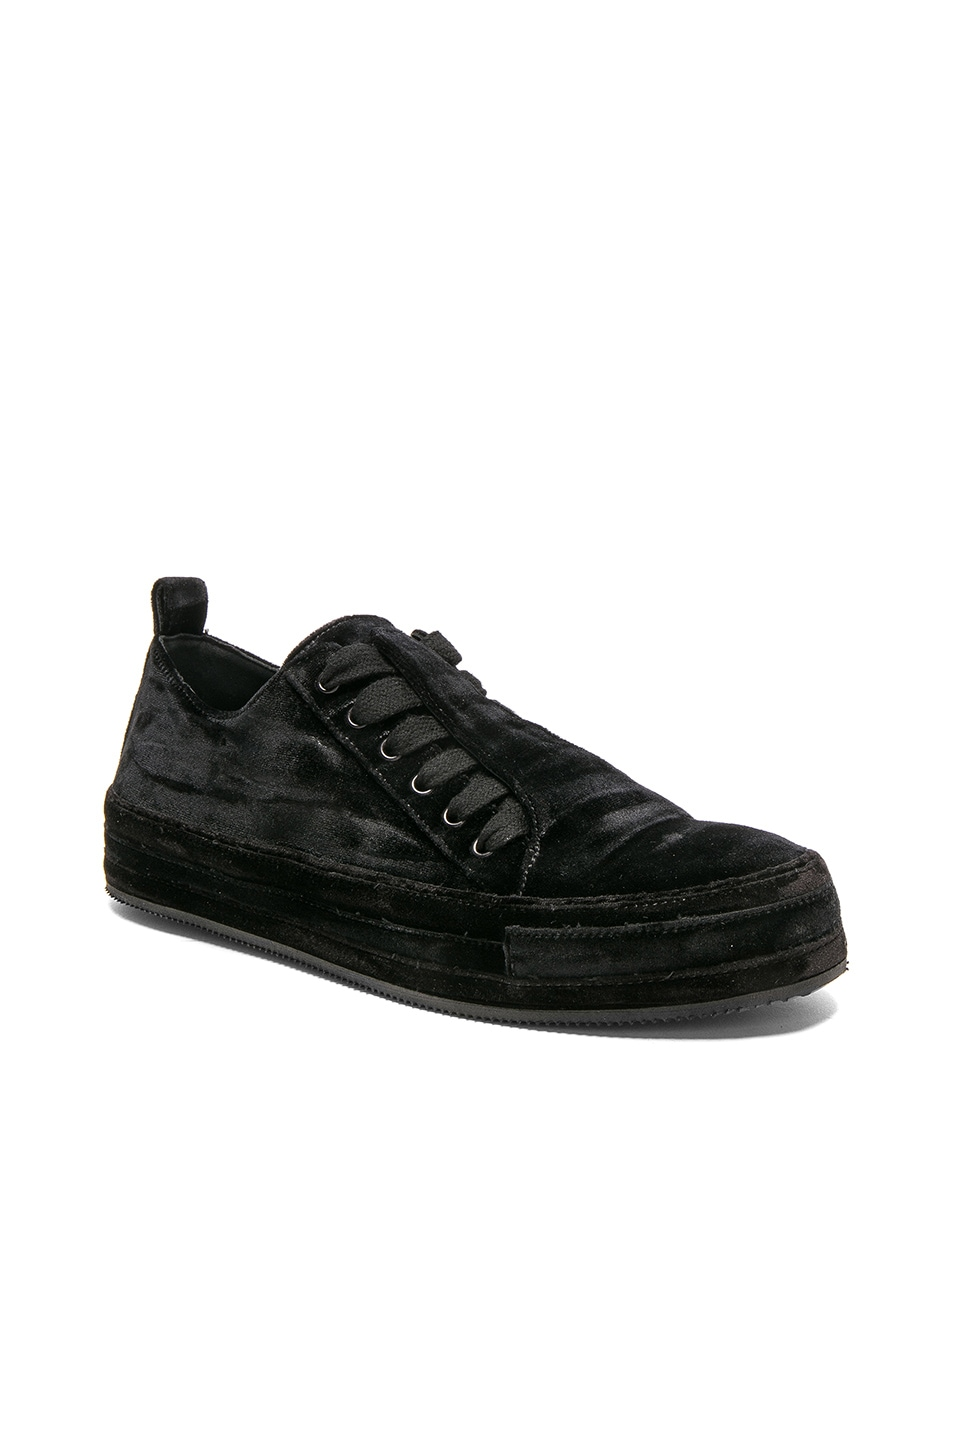 concealed lace trainers - Black Ann Demeulemeester ulJJ92QXf